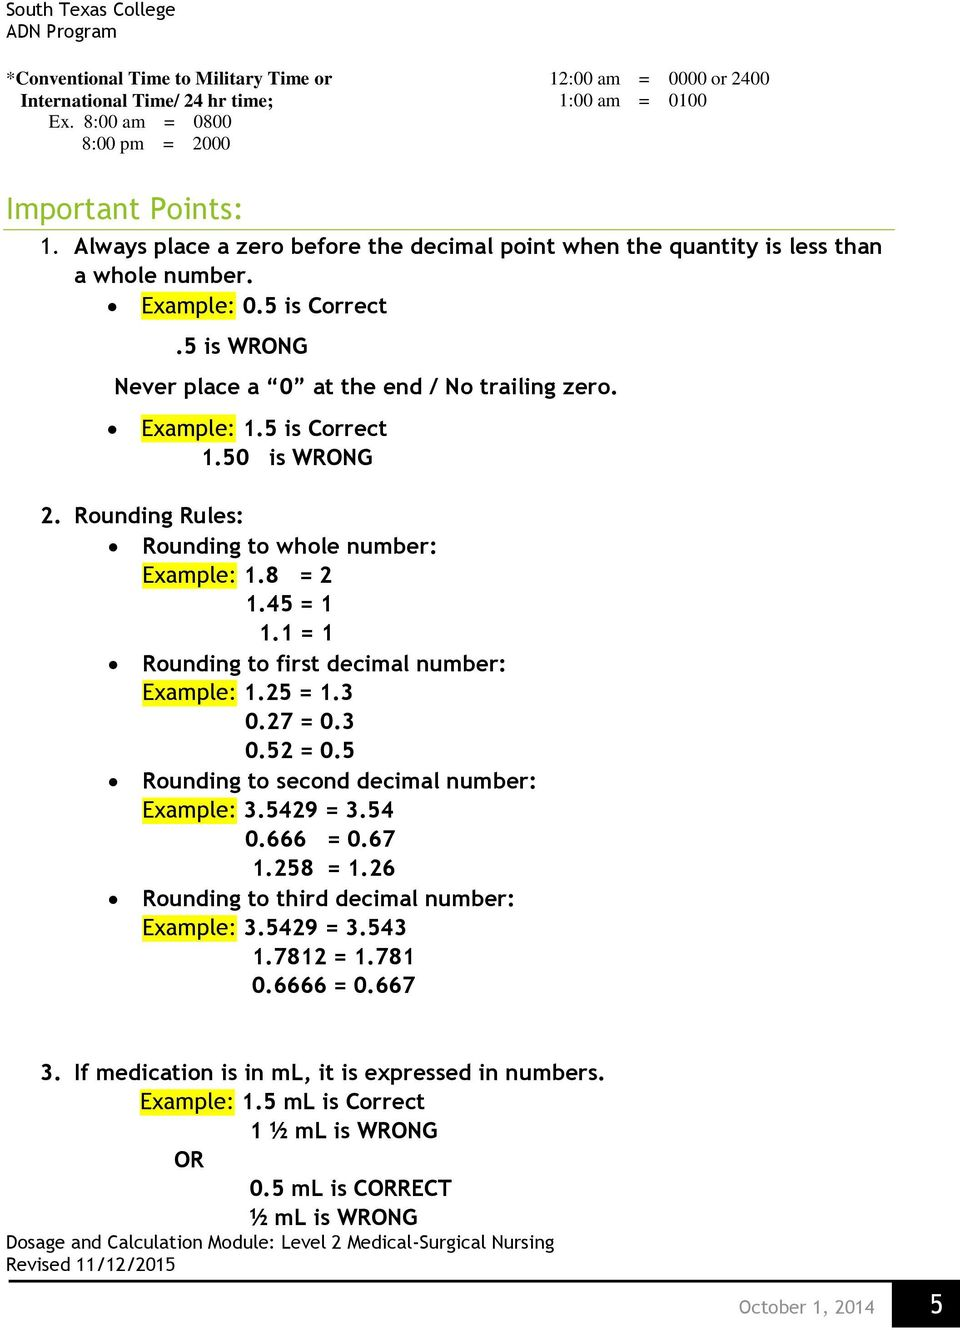 Dosage And Calculation Pdf